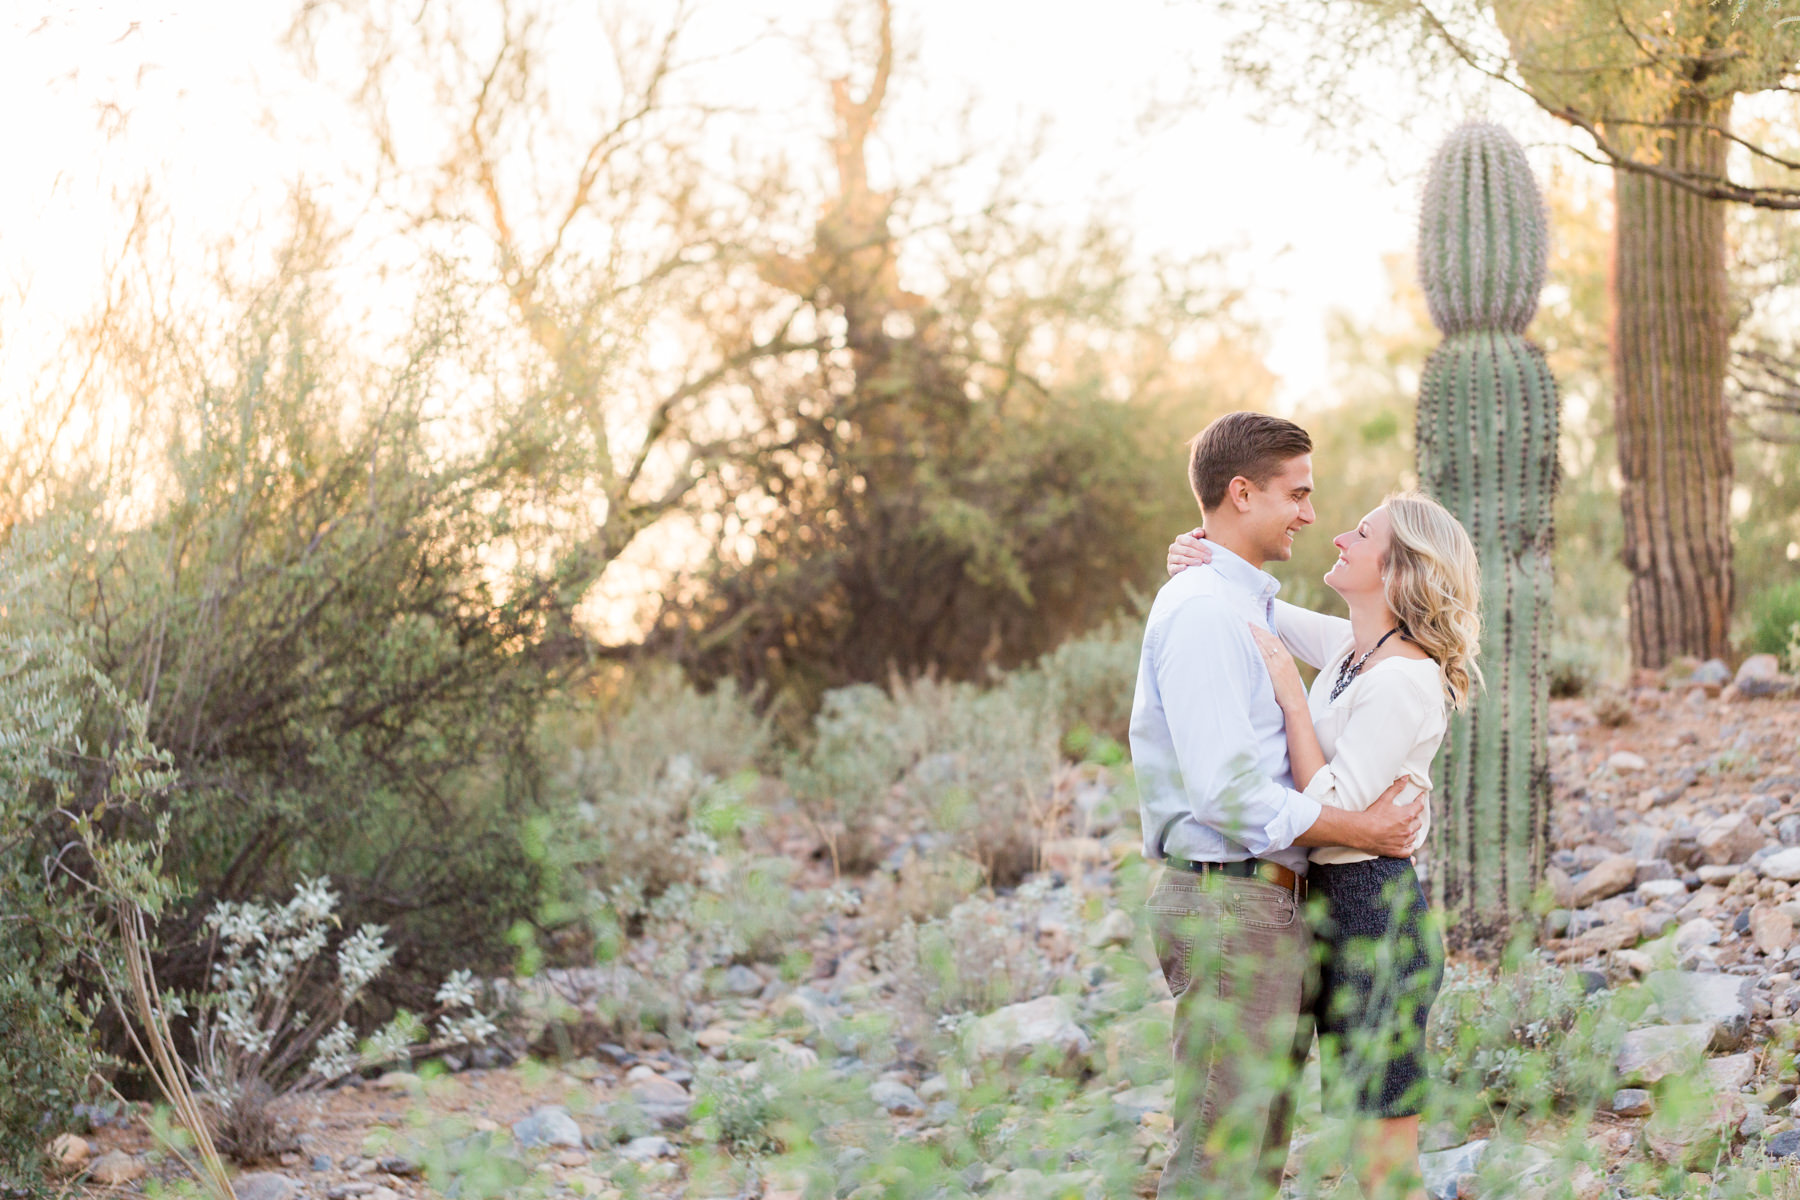 Romantic engagement session in desert